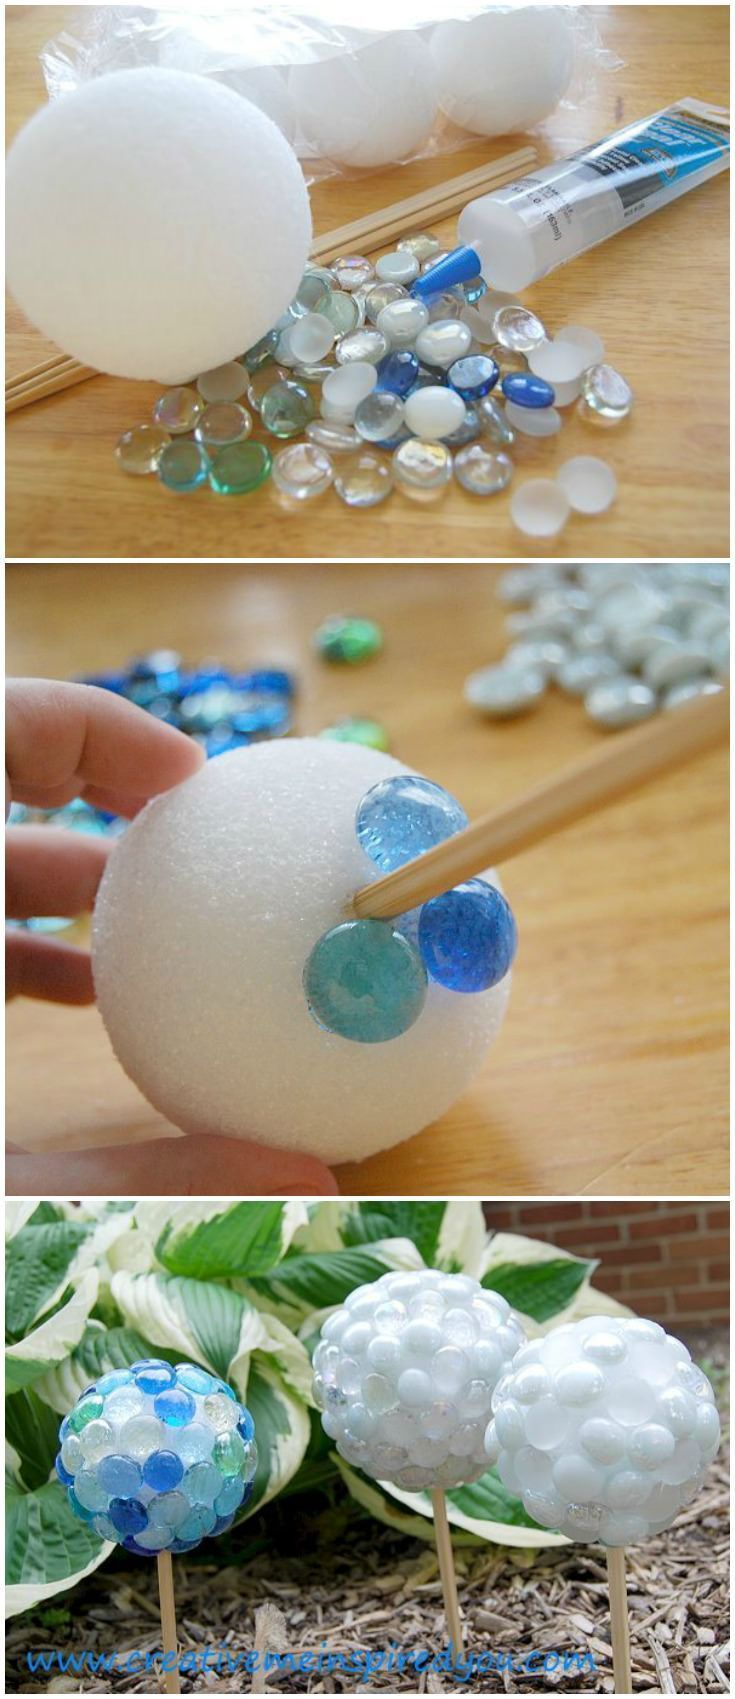 Create beautiful garden gazing stones from dollar store finds. Use glass marbles, Styrofoam balls, chop sticks and silicone to create lovely focal points for your garden.